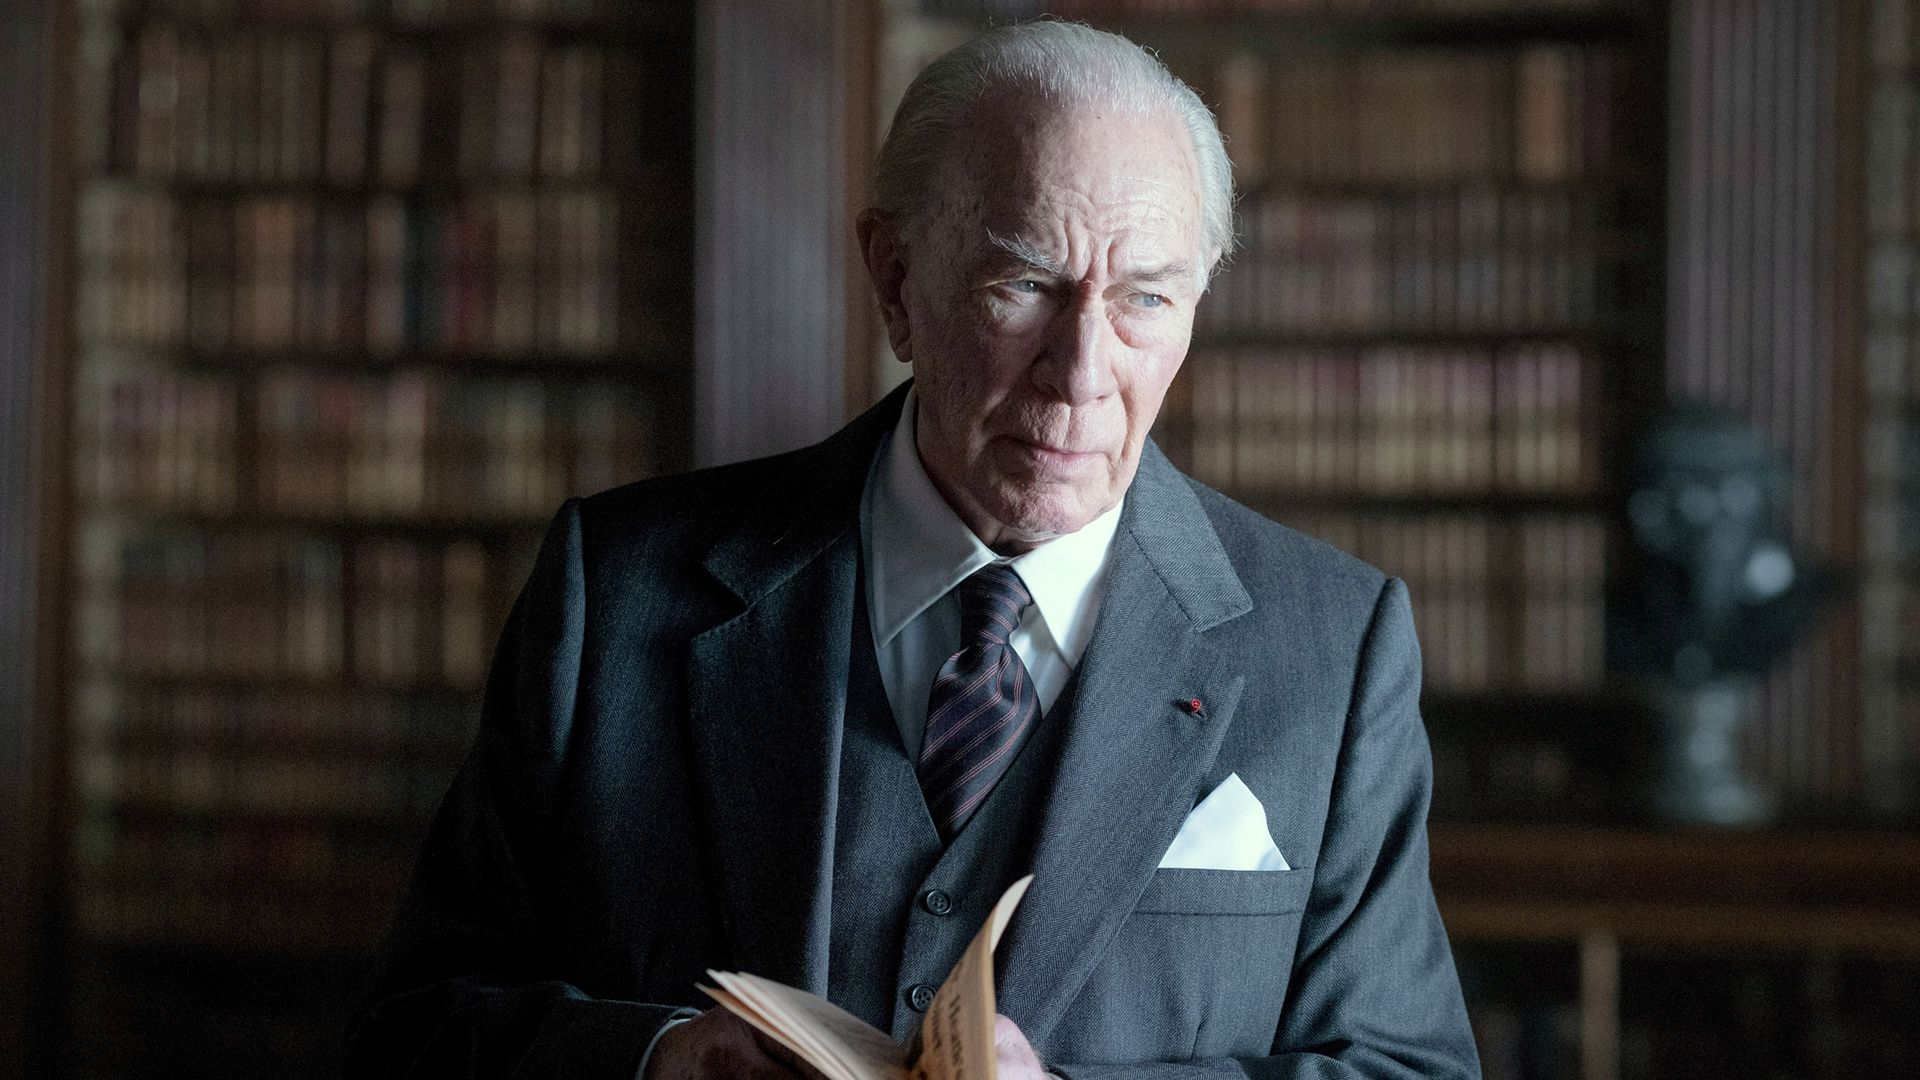 ALL THE MONEY IN THE WORLD, Christopher Plummer, as J. Paul Getty, 2017.